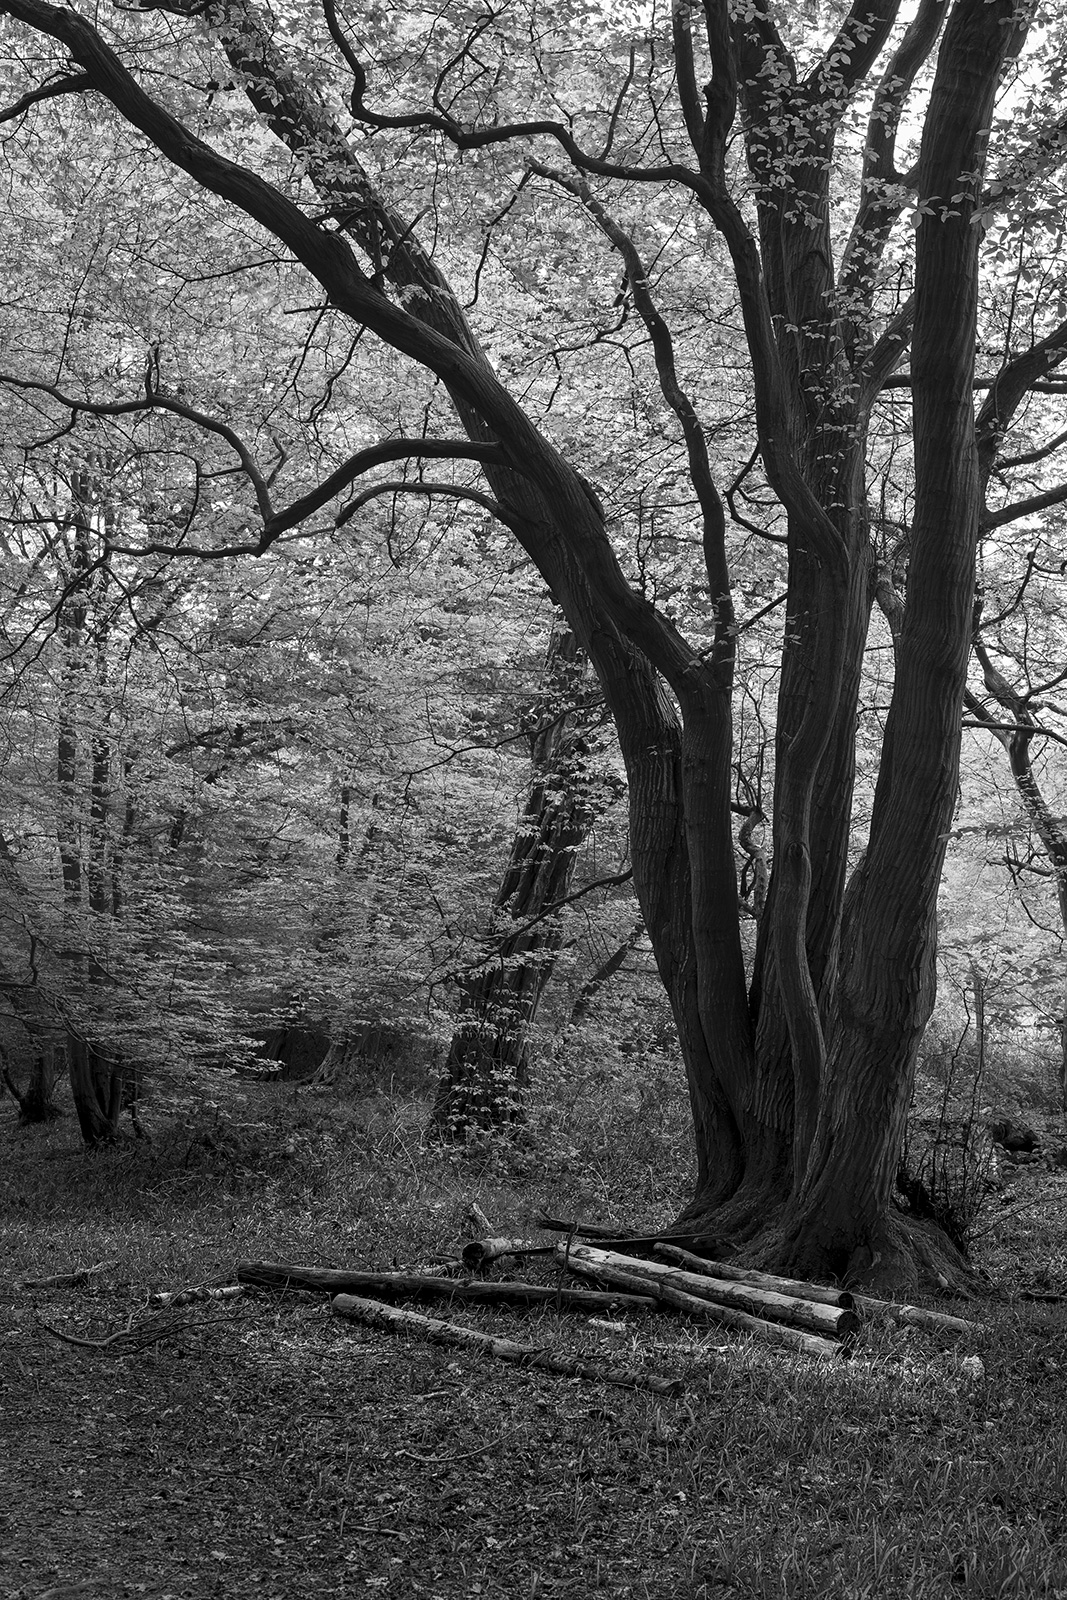 Coppiced Hornbeam tree in woodland with cut logs on ground, black and white nature photography documentary britain ©P. Maton 2019 eyeteeth.net